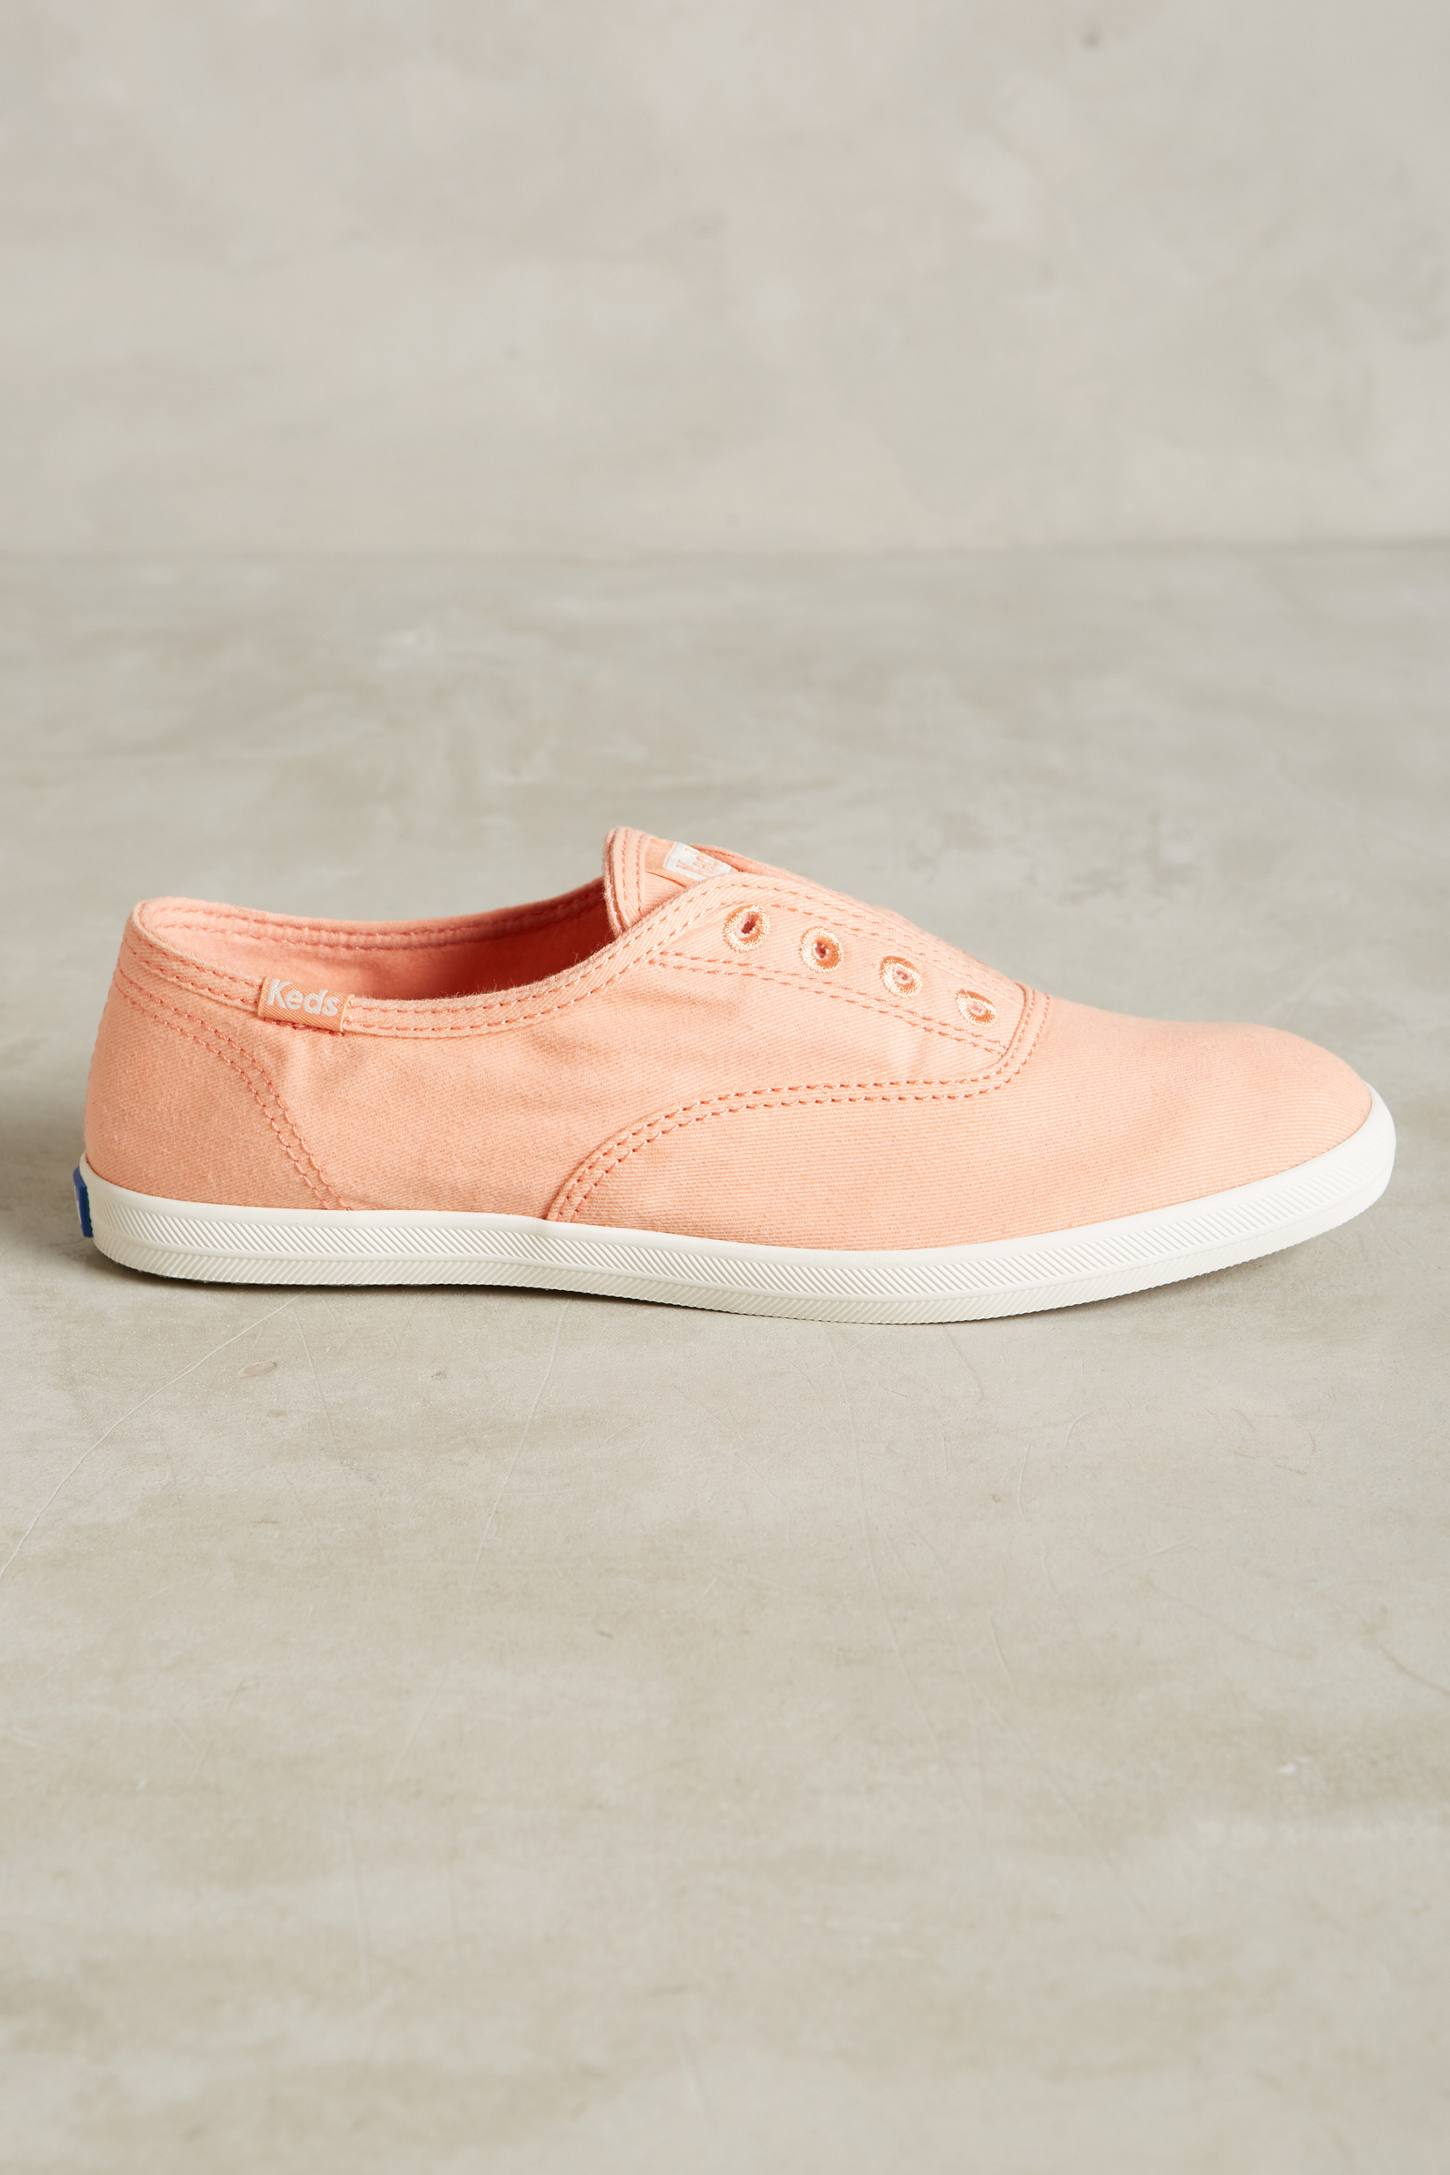 Slide View: 2: Keds Washed Canvas Sneakers